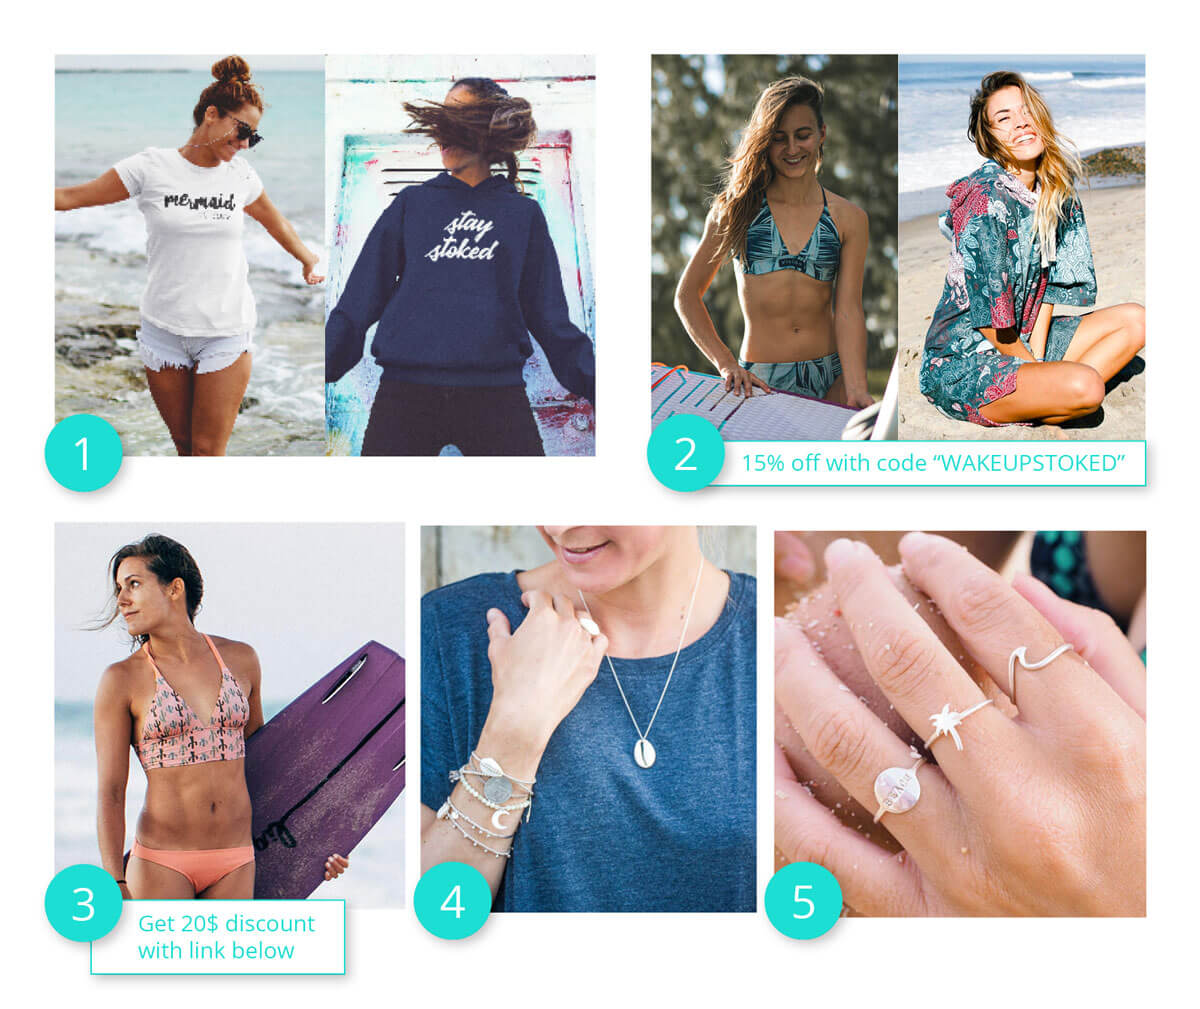 Gifts for kite girls, presents for surf girls, saltwater fashionistas and mermaids